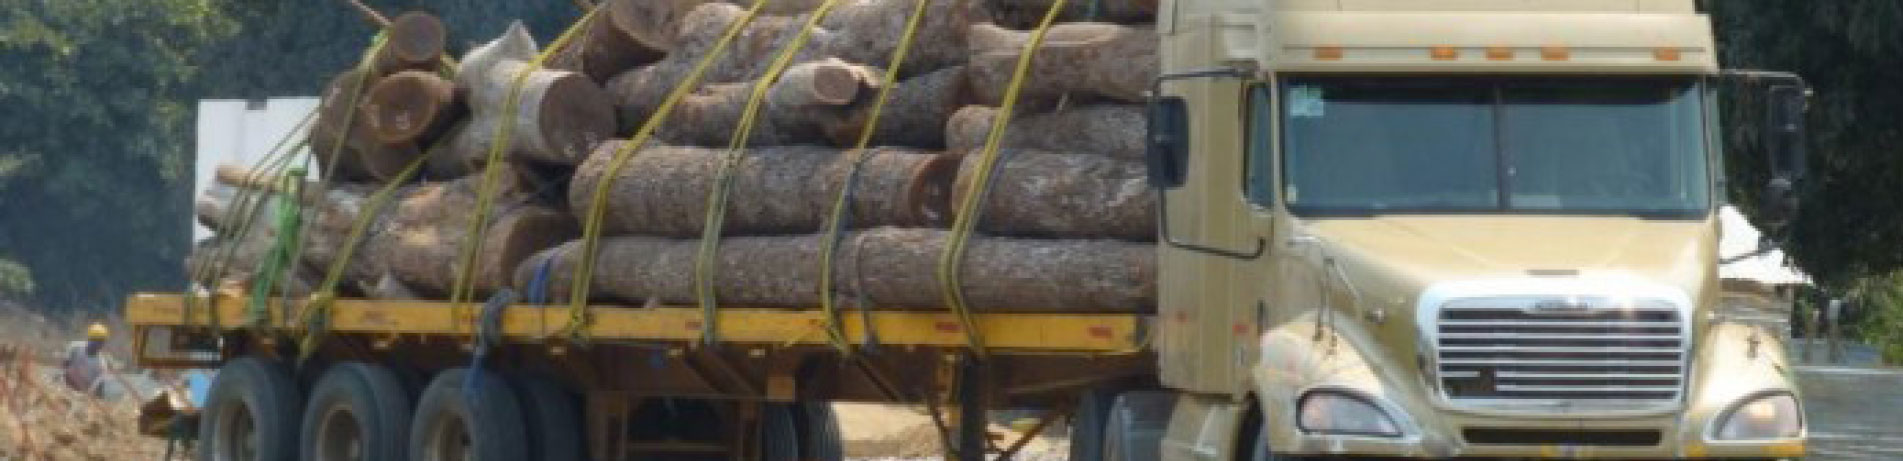 Timber logs being transported by truck in Mozambique